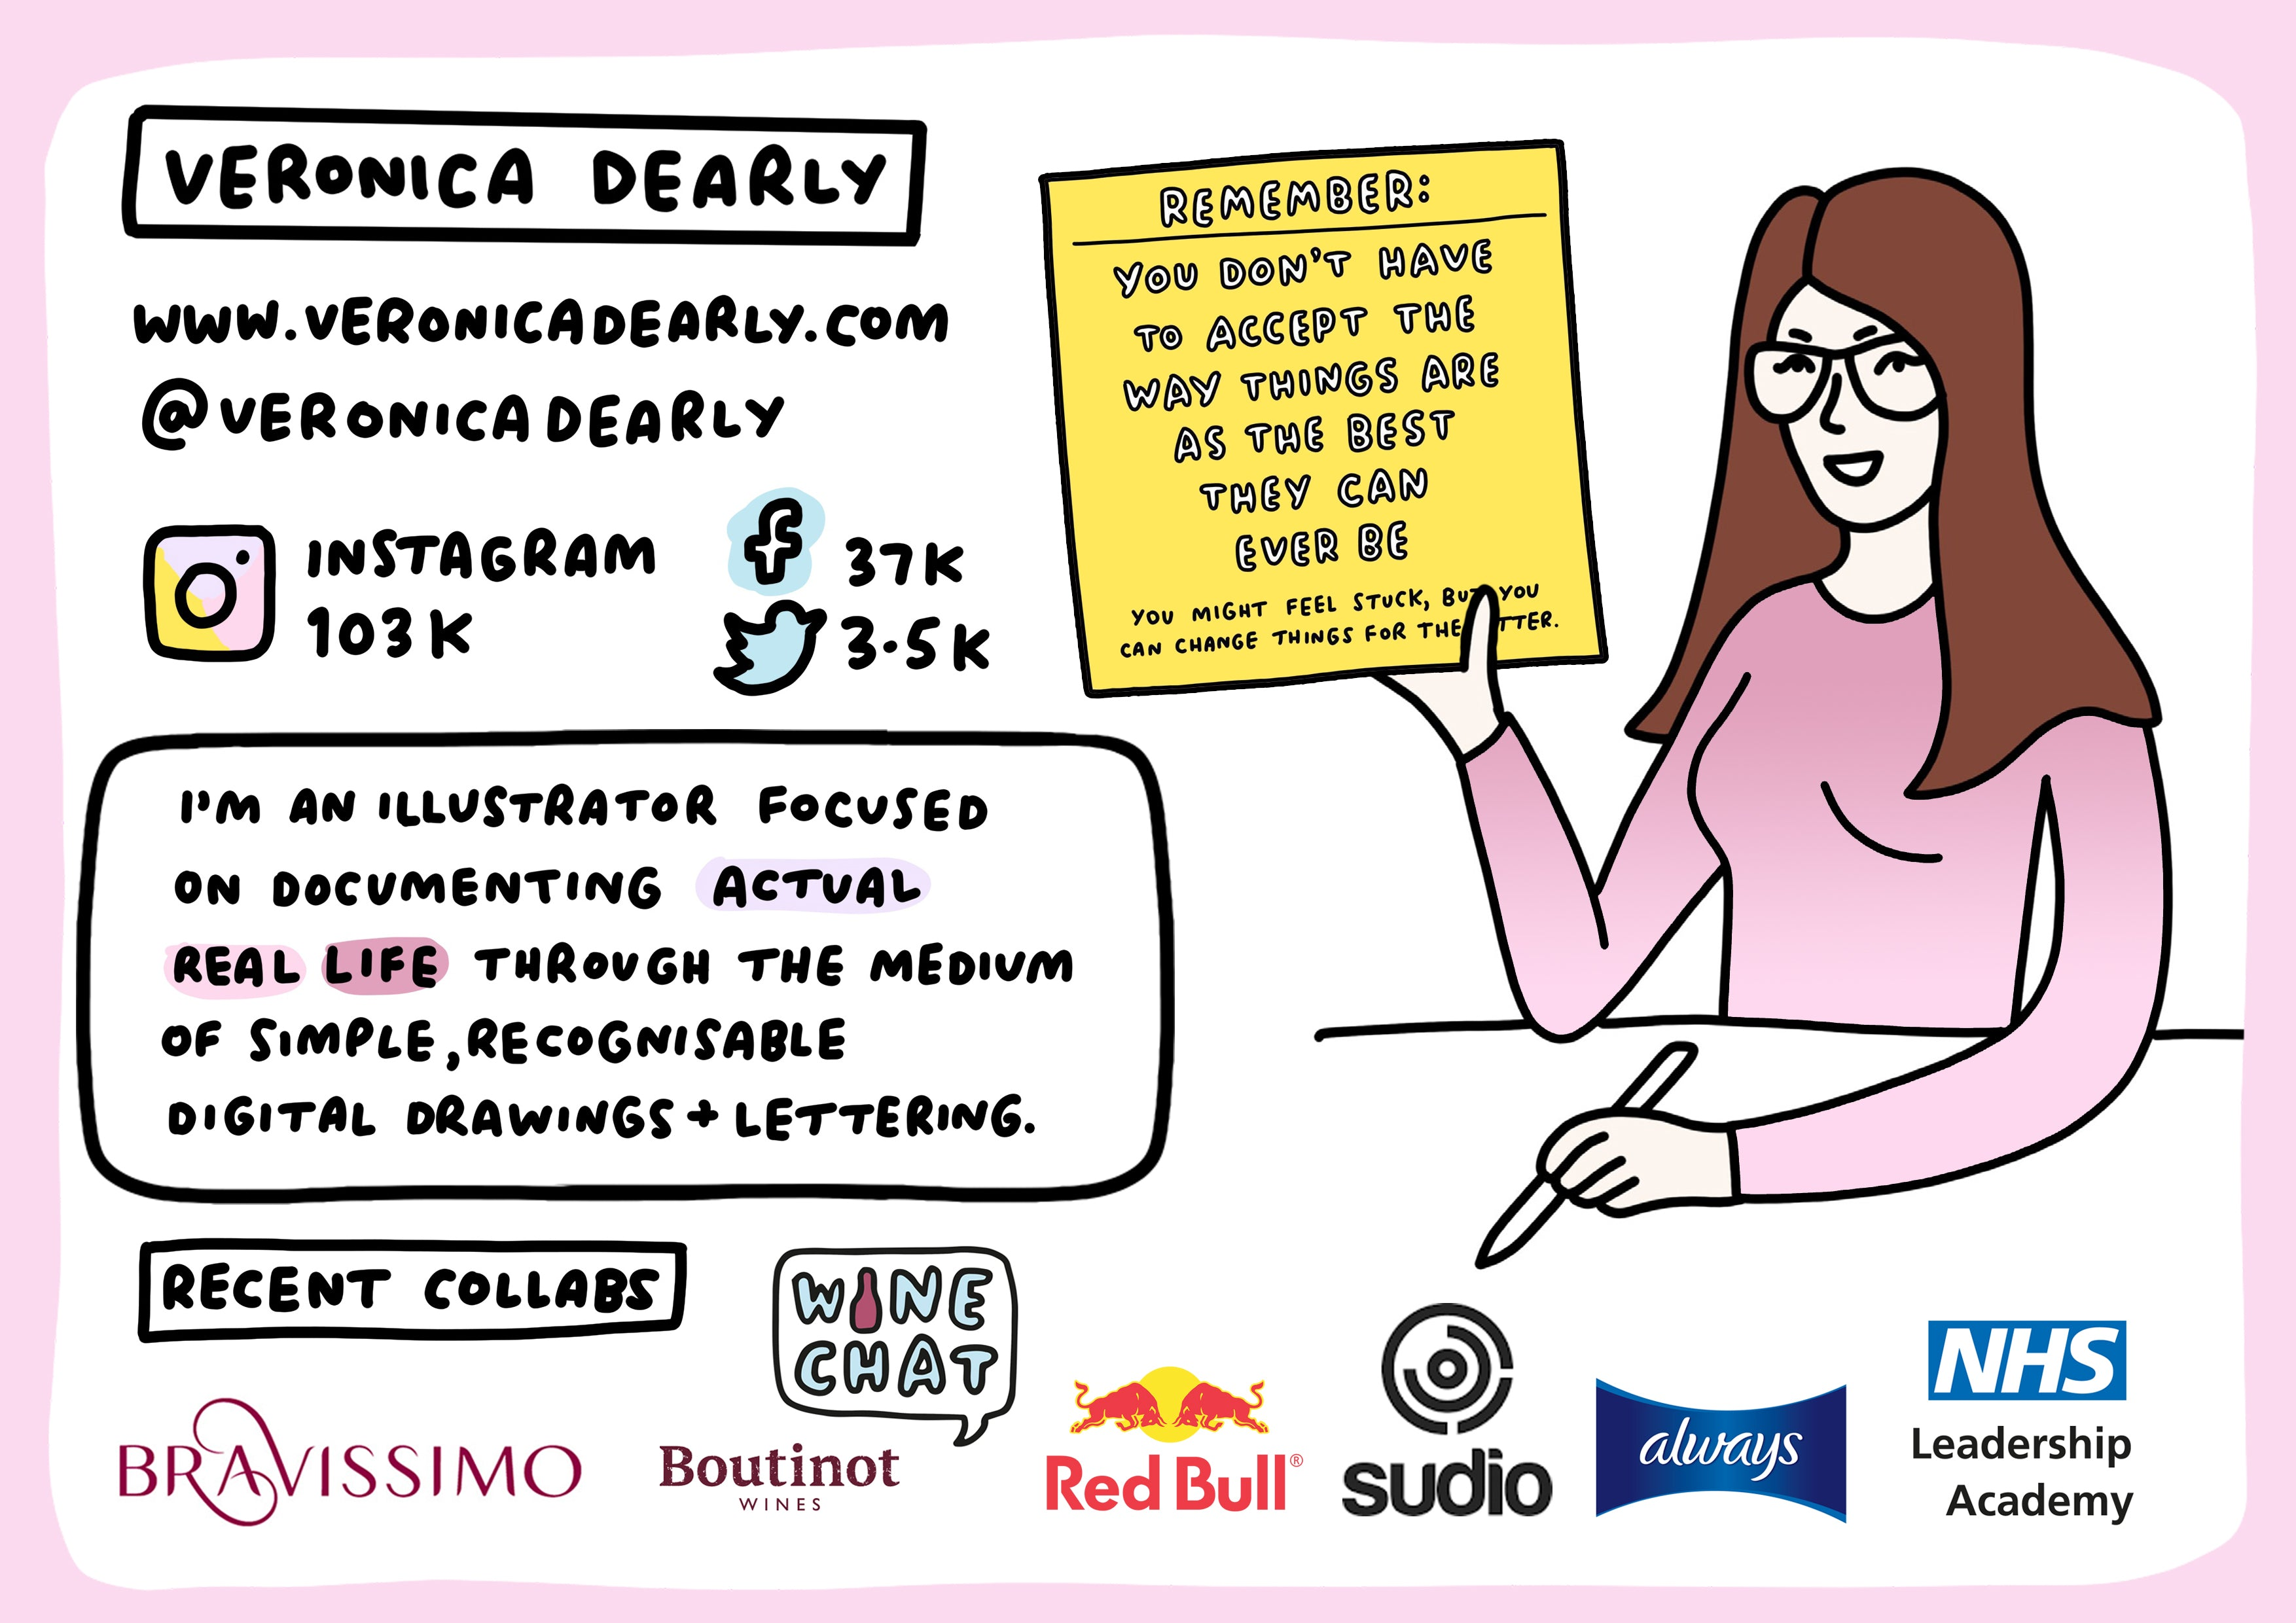 Veronica Dearly Brand Influencer Marketing